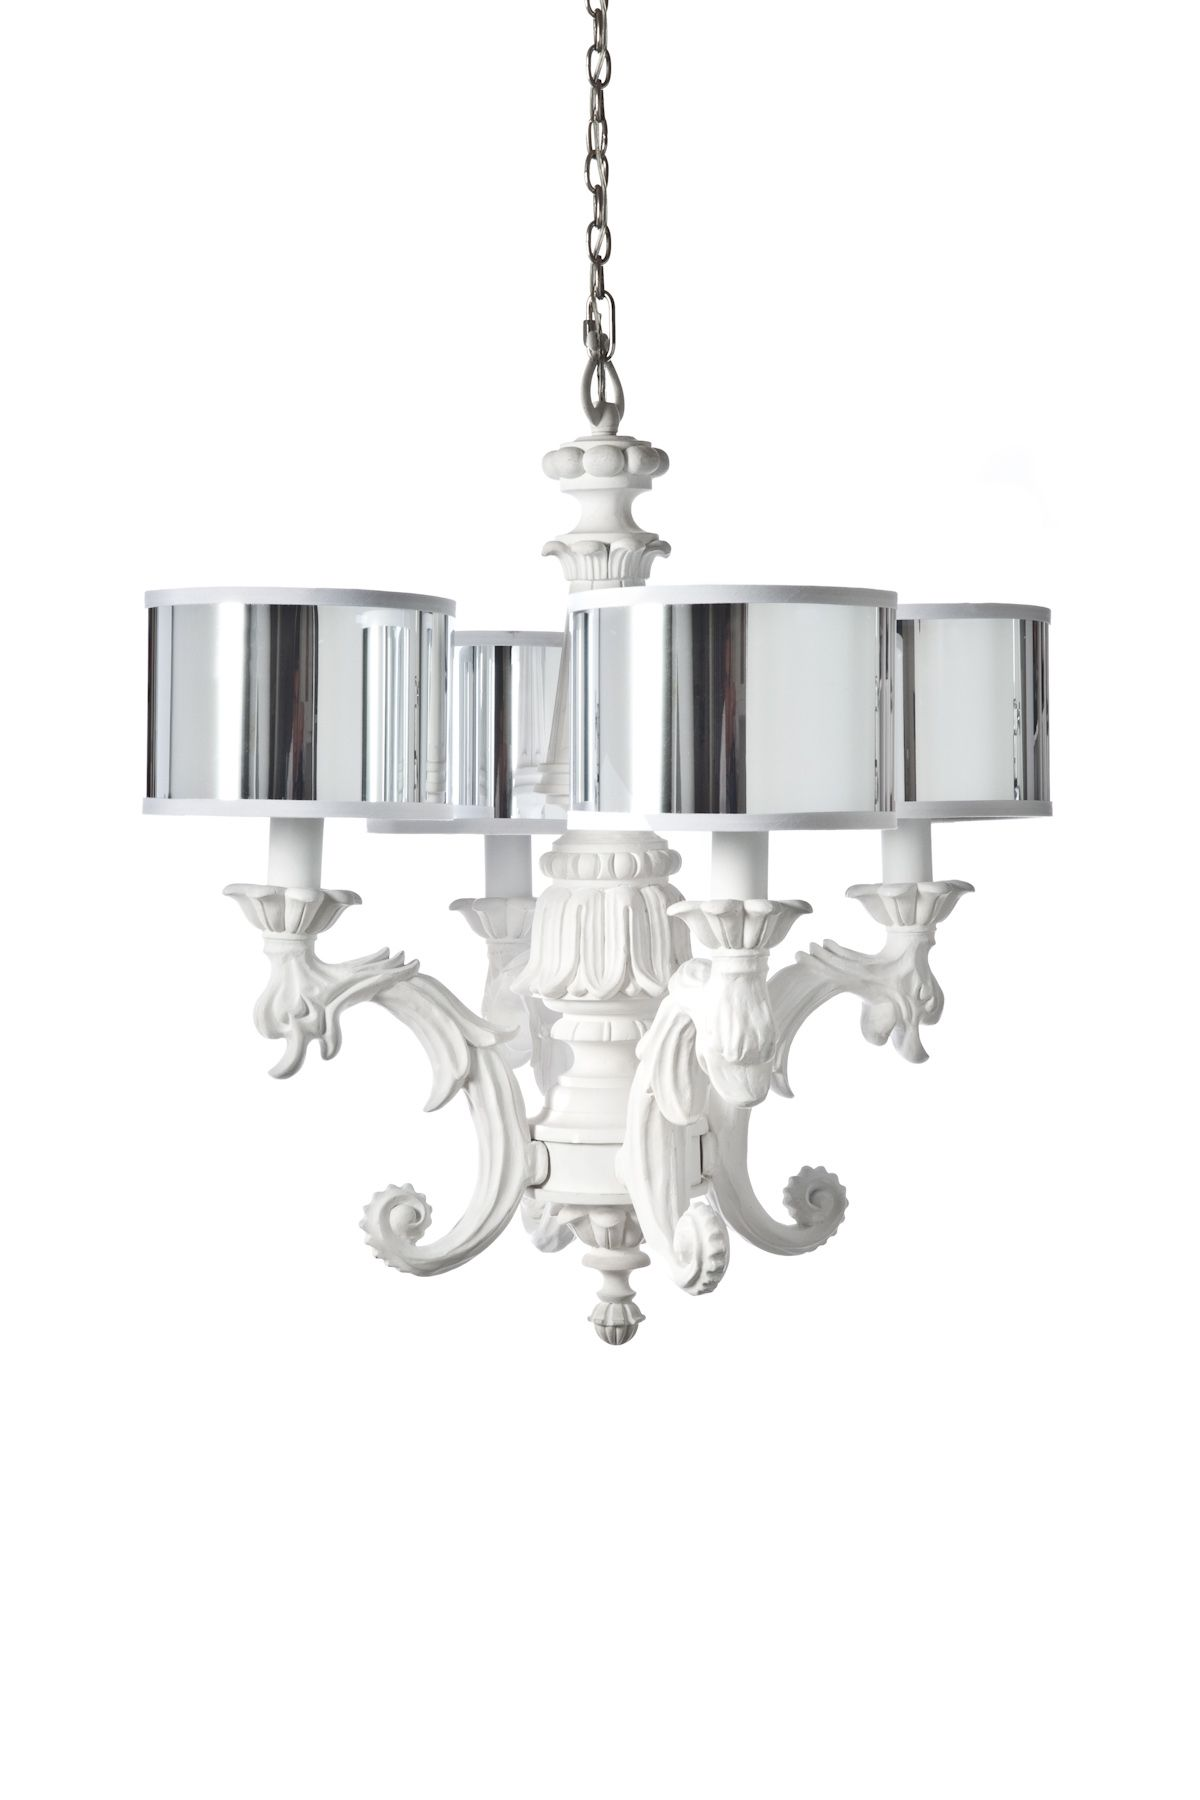 horchow lighting chandeliers. Inside Lighting Has Same Barbara Cosgrove Chandelier As Horchow For $925 Instead Of $1185 Chandeliers H